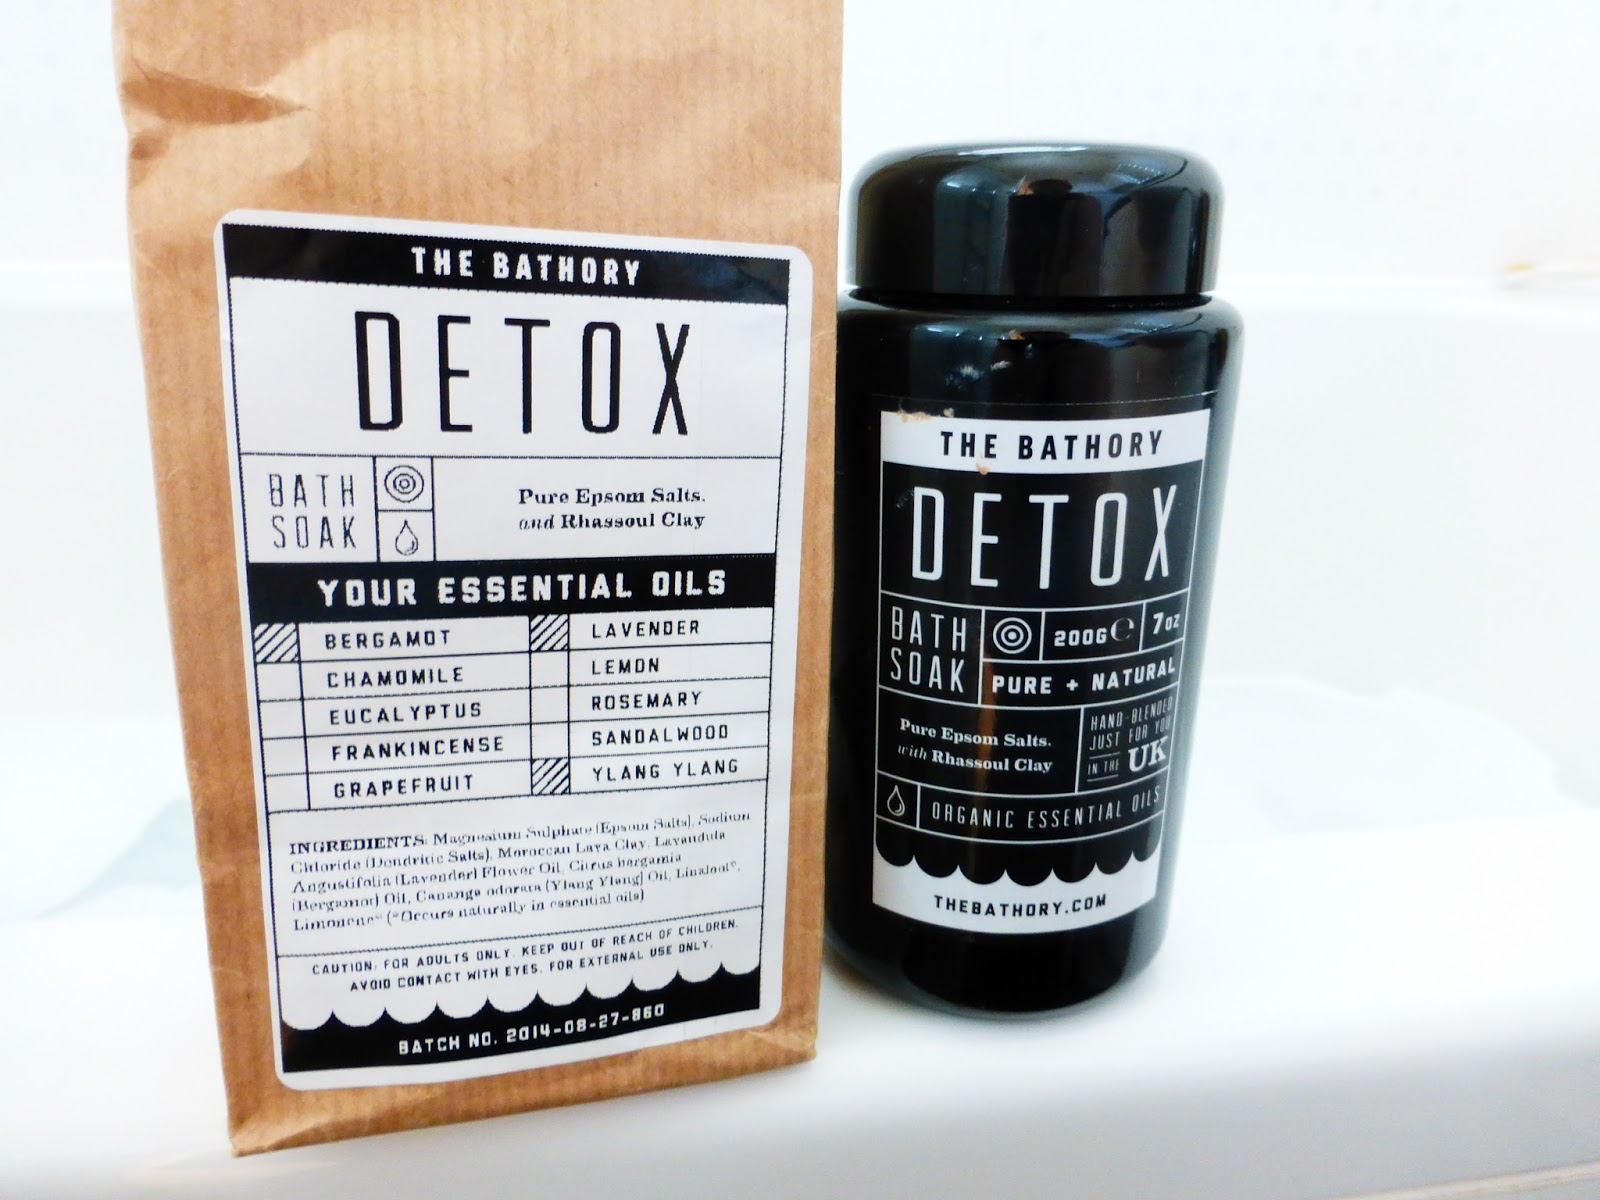 The Bathory - Invent Your Perfect Bath Soak!